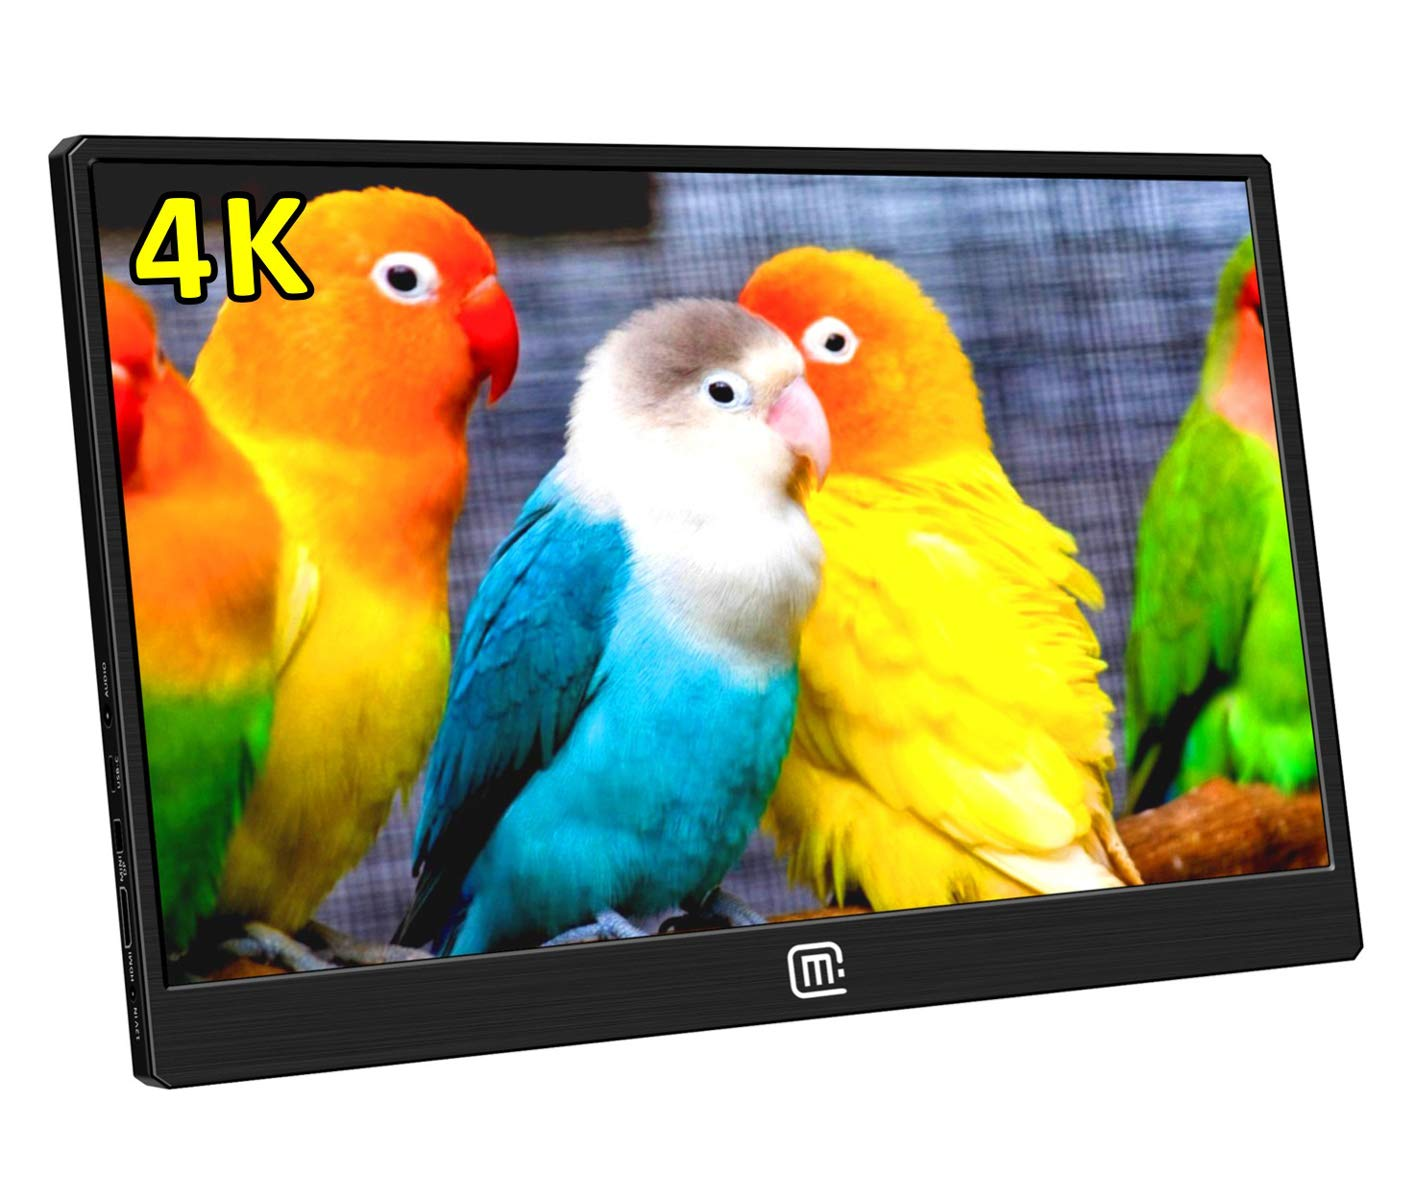 MageDok 4K Portable Monitor With USB Type-C/HDMI/Display Port Input,15.6  Inch,Ultra HD 3840x2160 IPS Display,Ultralight Weight,Stereo  Speakers,Mountable: ...